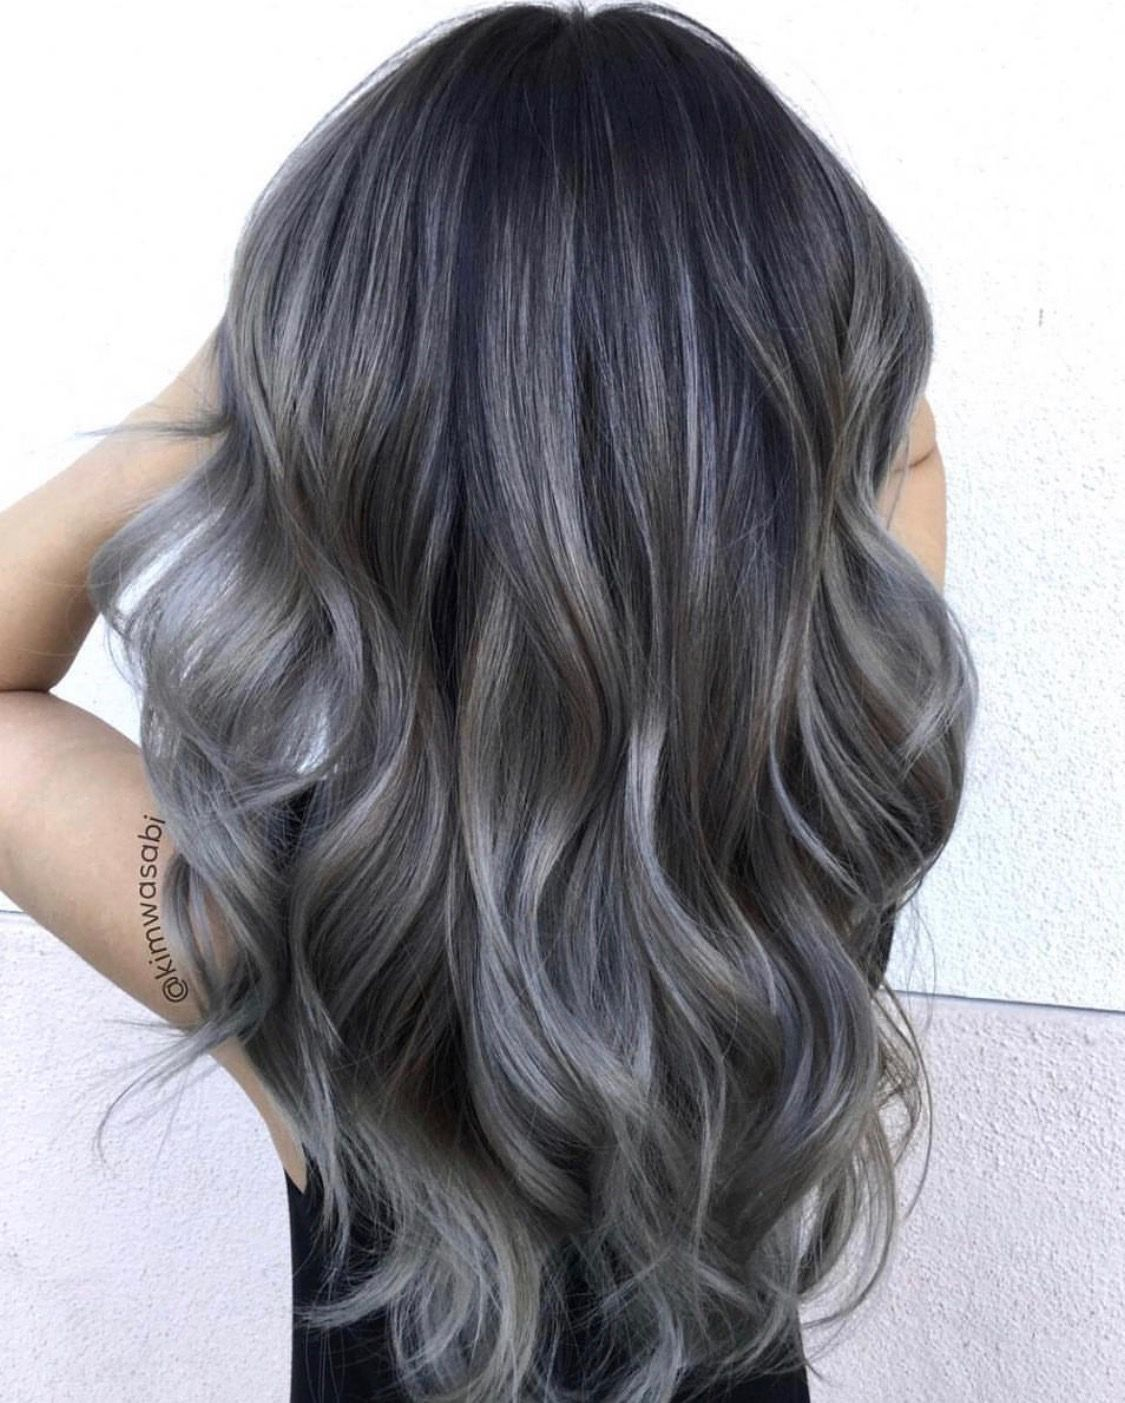 ash grey balayage hair hair hair styles balayage. Black Bedroom Furniture Sets. Home Design Ideas